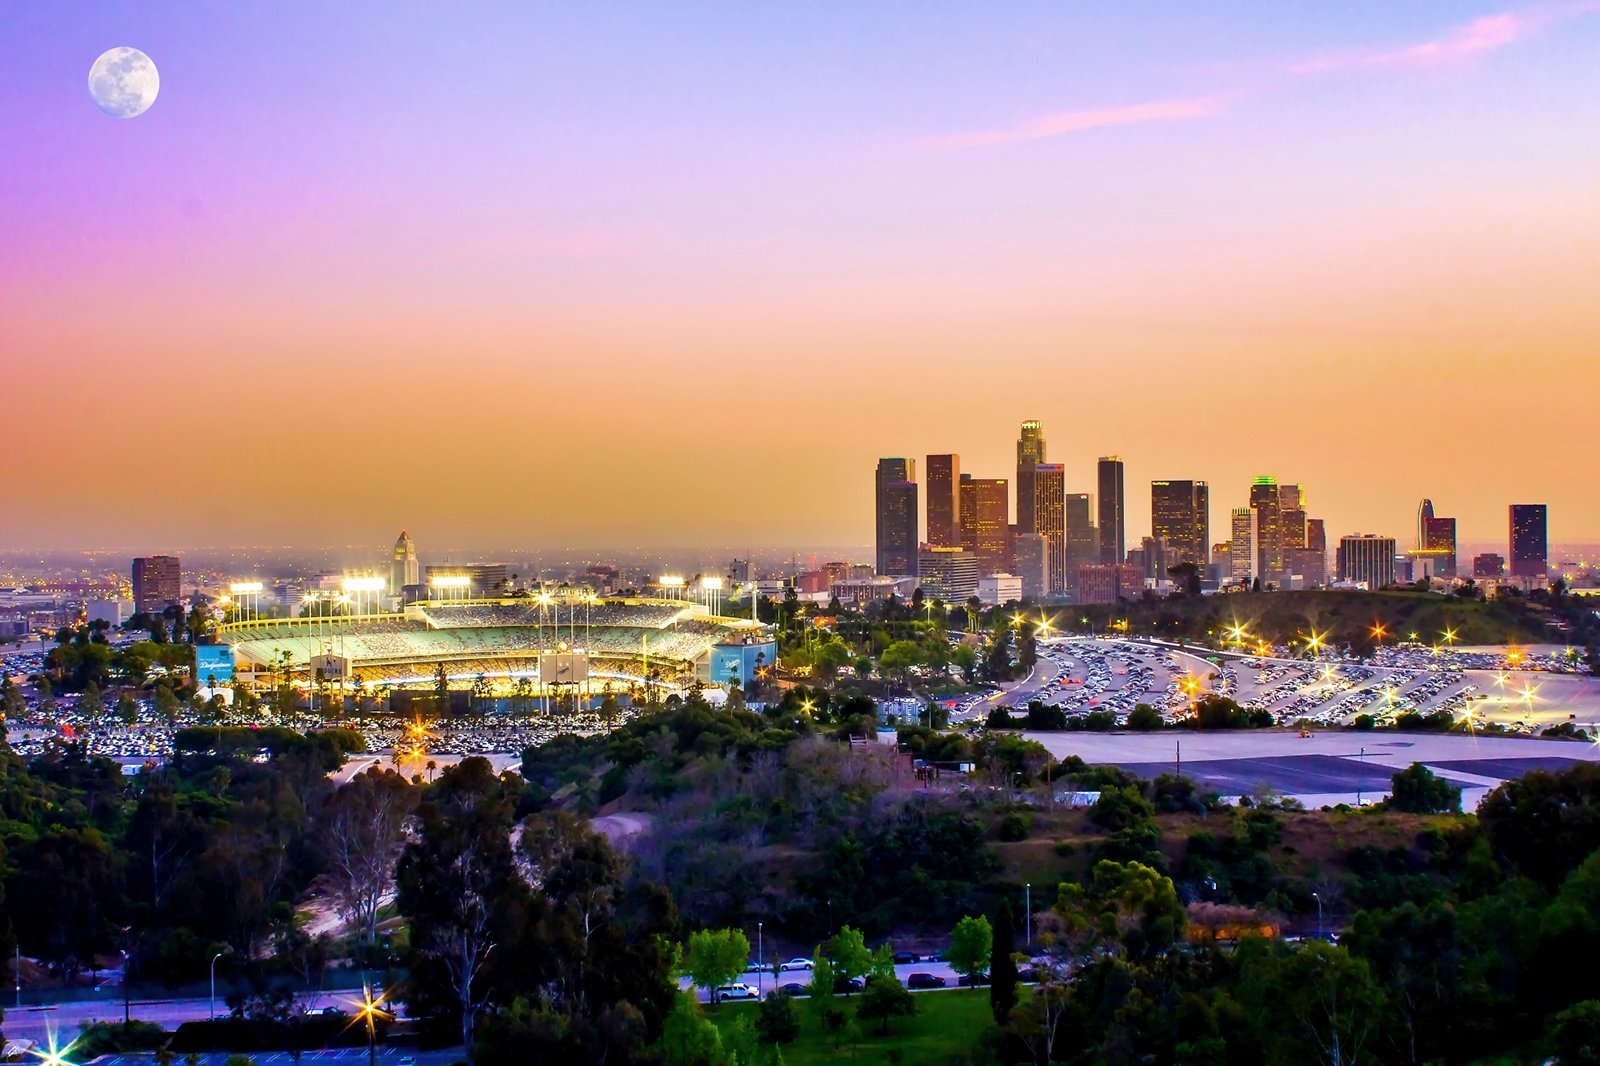 Los Angeles Travel Kit - Useful Information to Help You